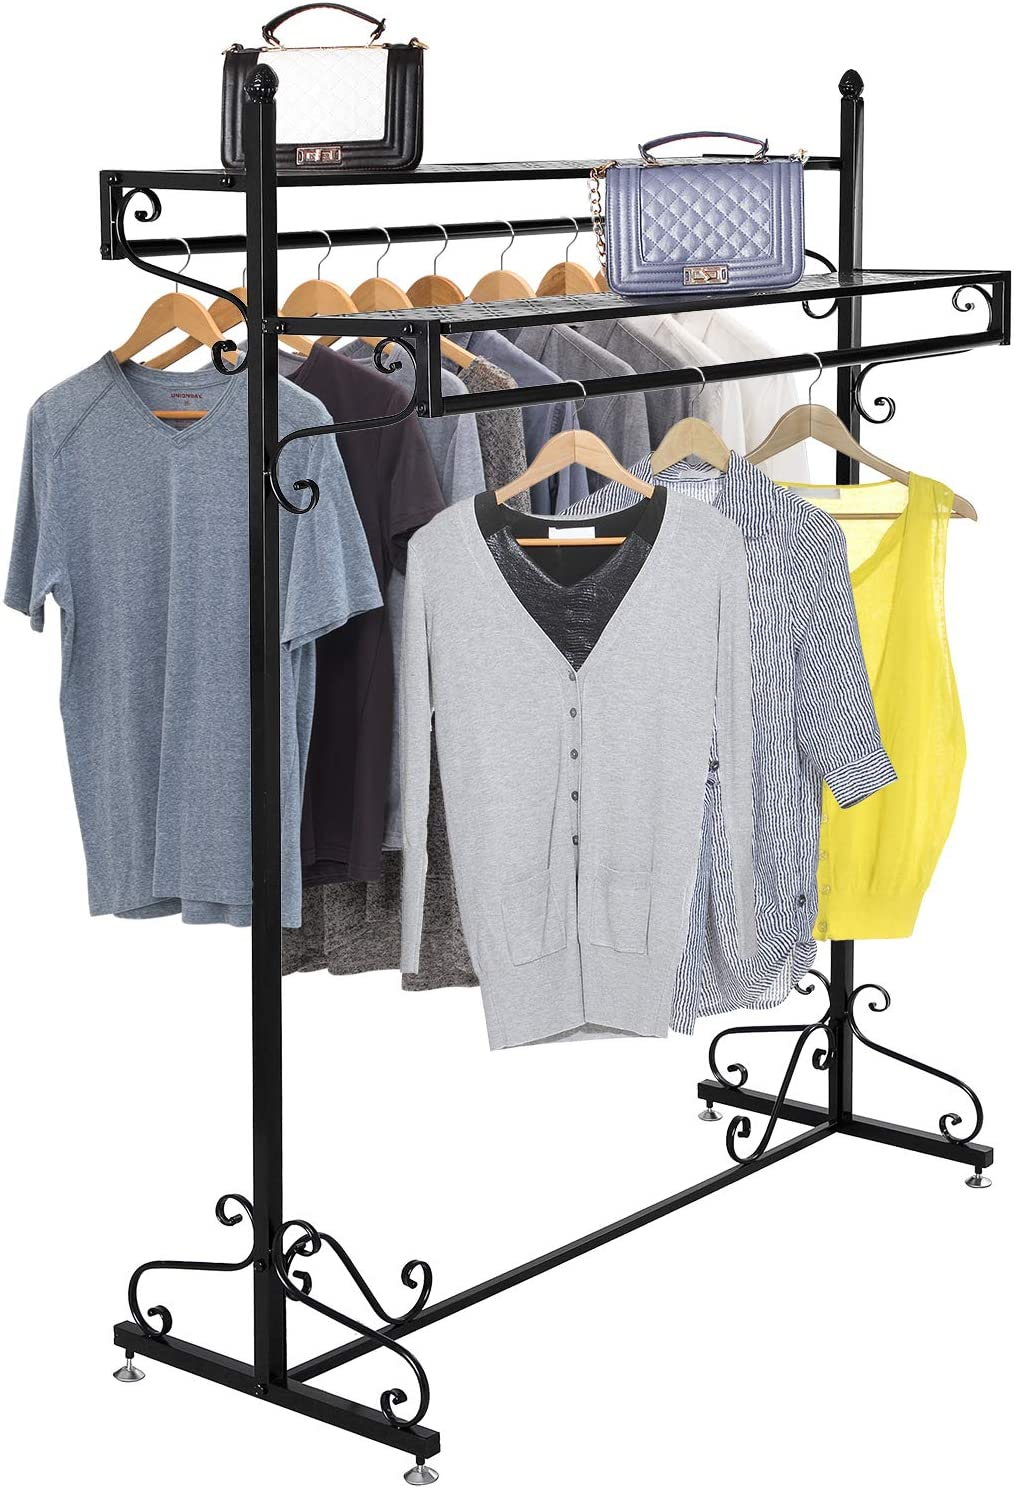 MyGift 63-Inch Victorian Style Black Metal 2-Tier Freestanding Clothing Closet/Garment Hanging Display Rack with Top Cargo Storage Shelves